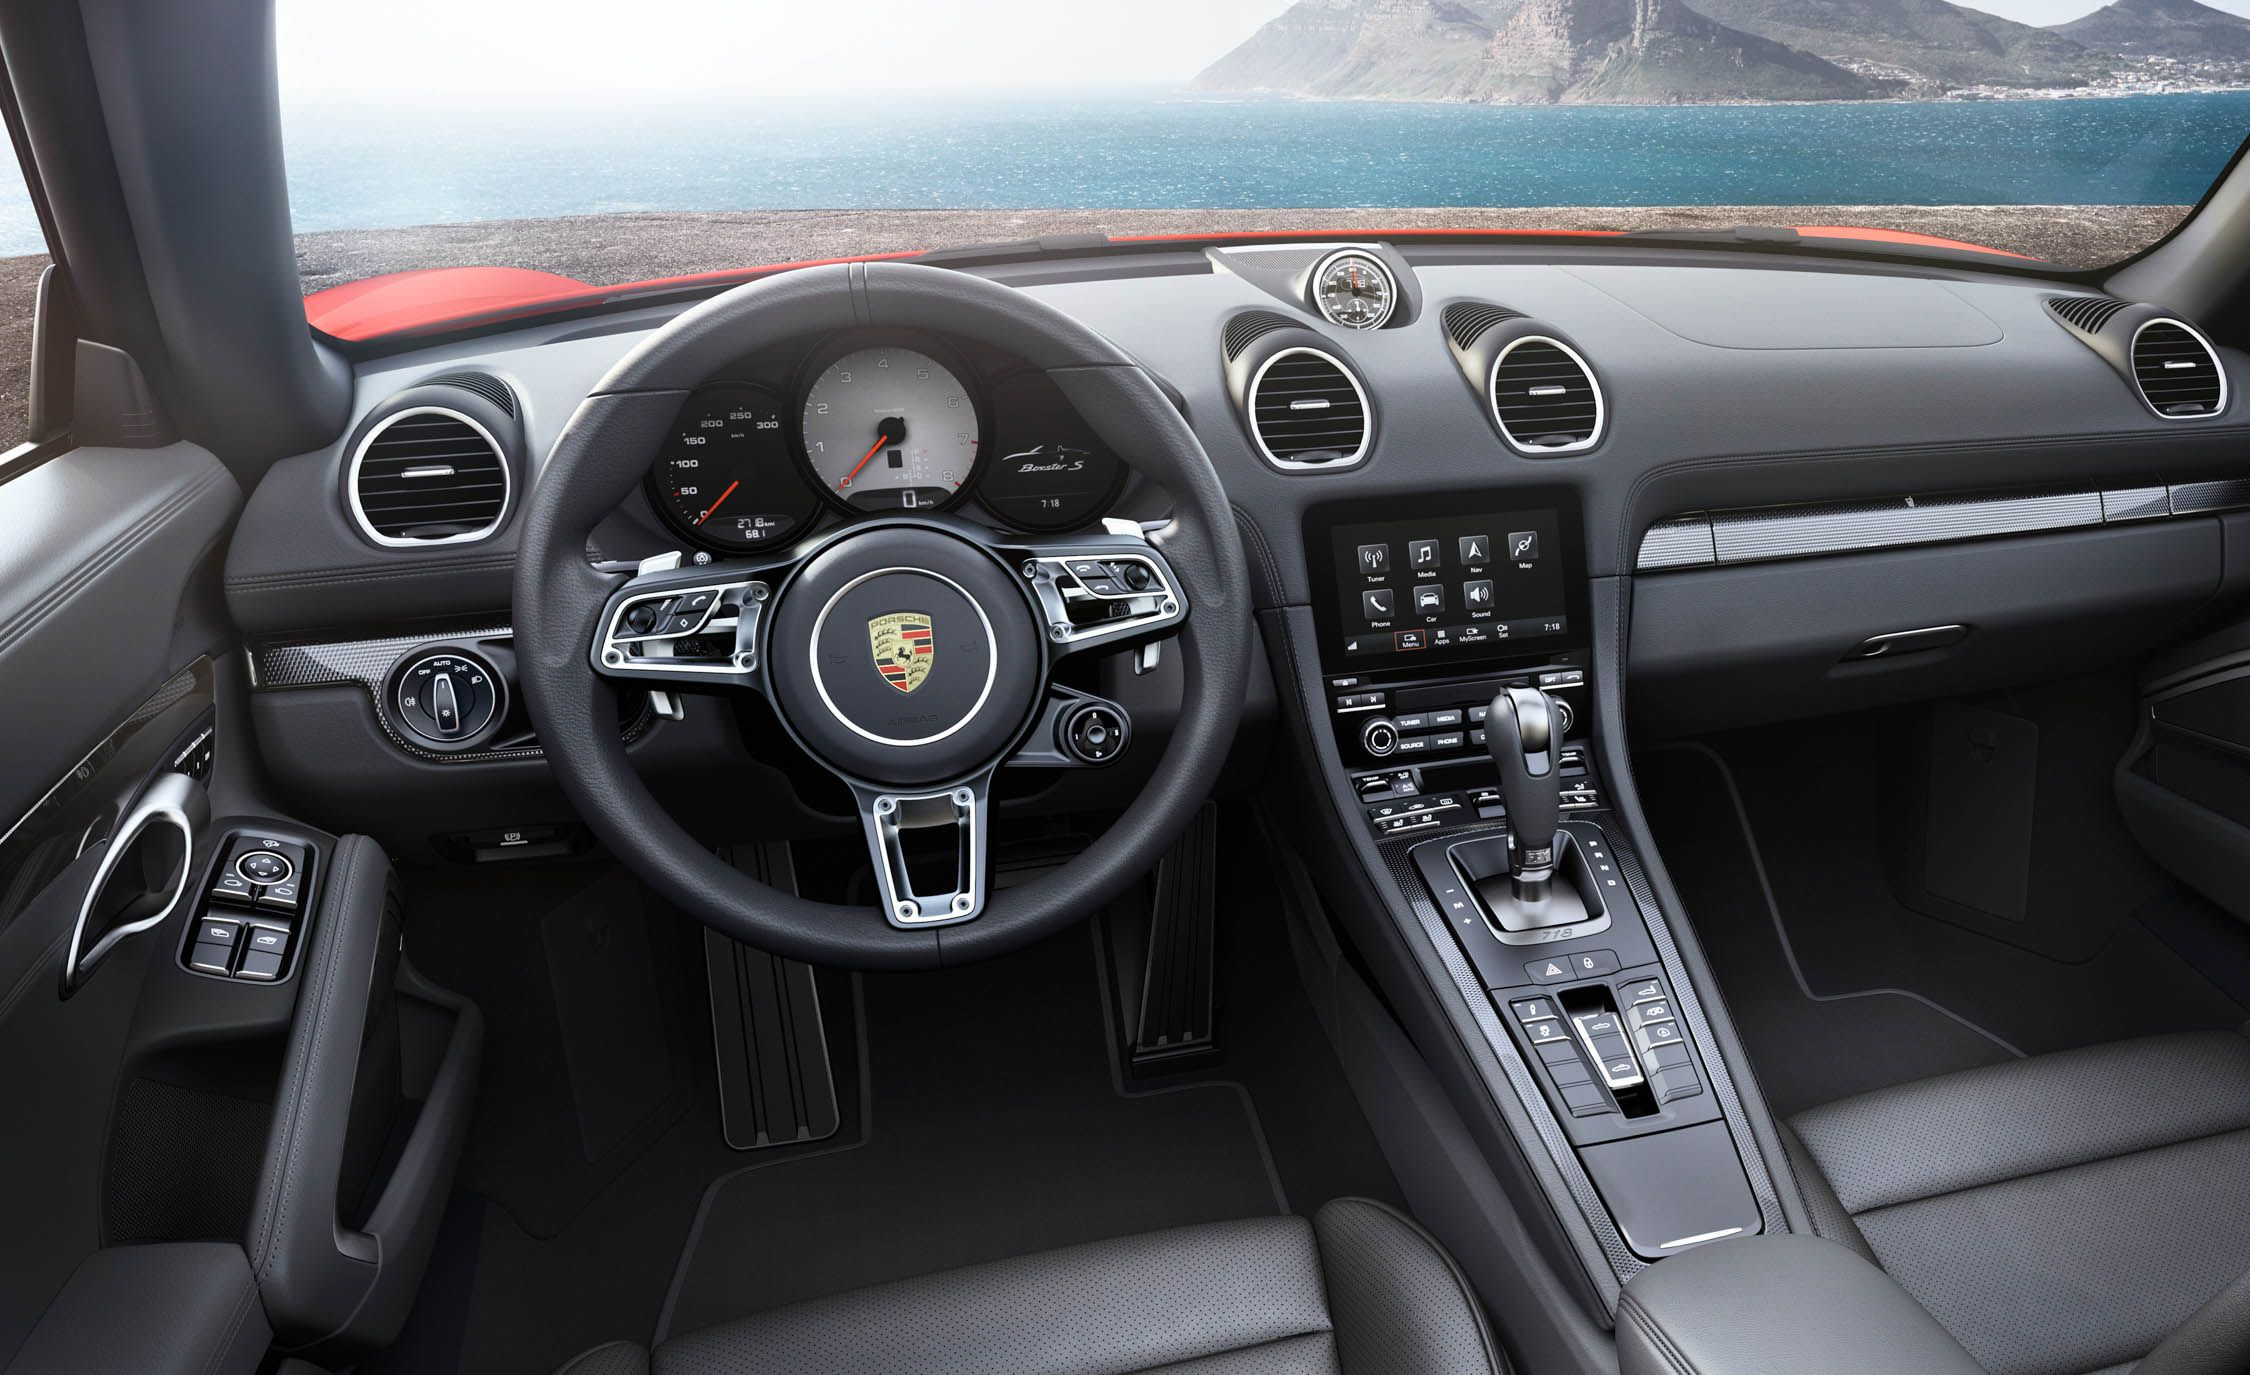 2019 Porsche 718 Boxster Reviews Price Photos 2014 Ford Mustang 3 7 Fuel Filter Location And Specs Car Driver